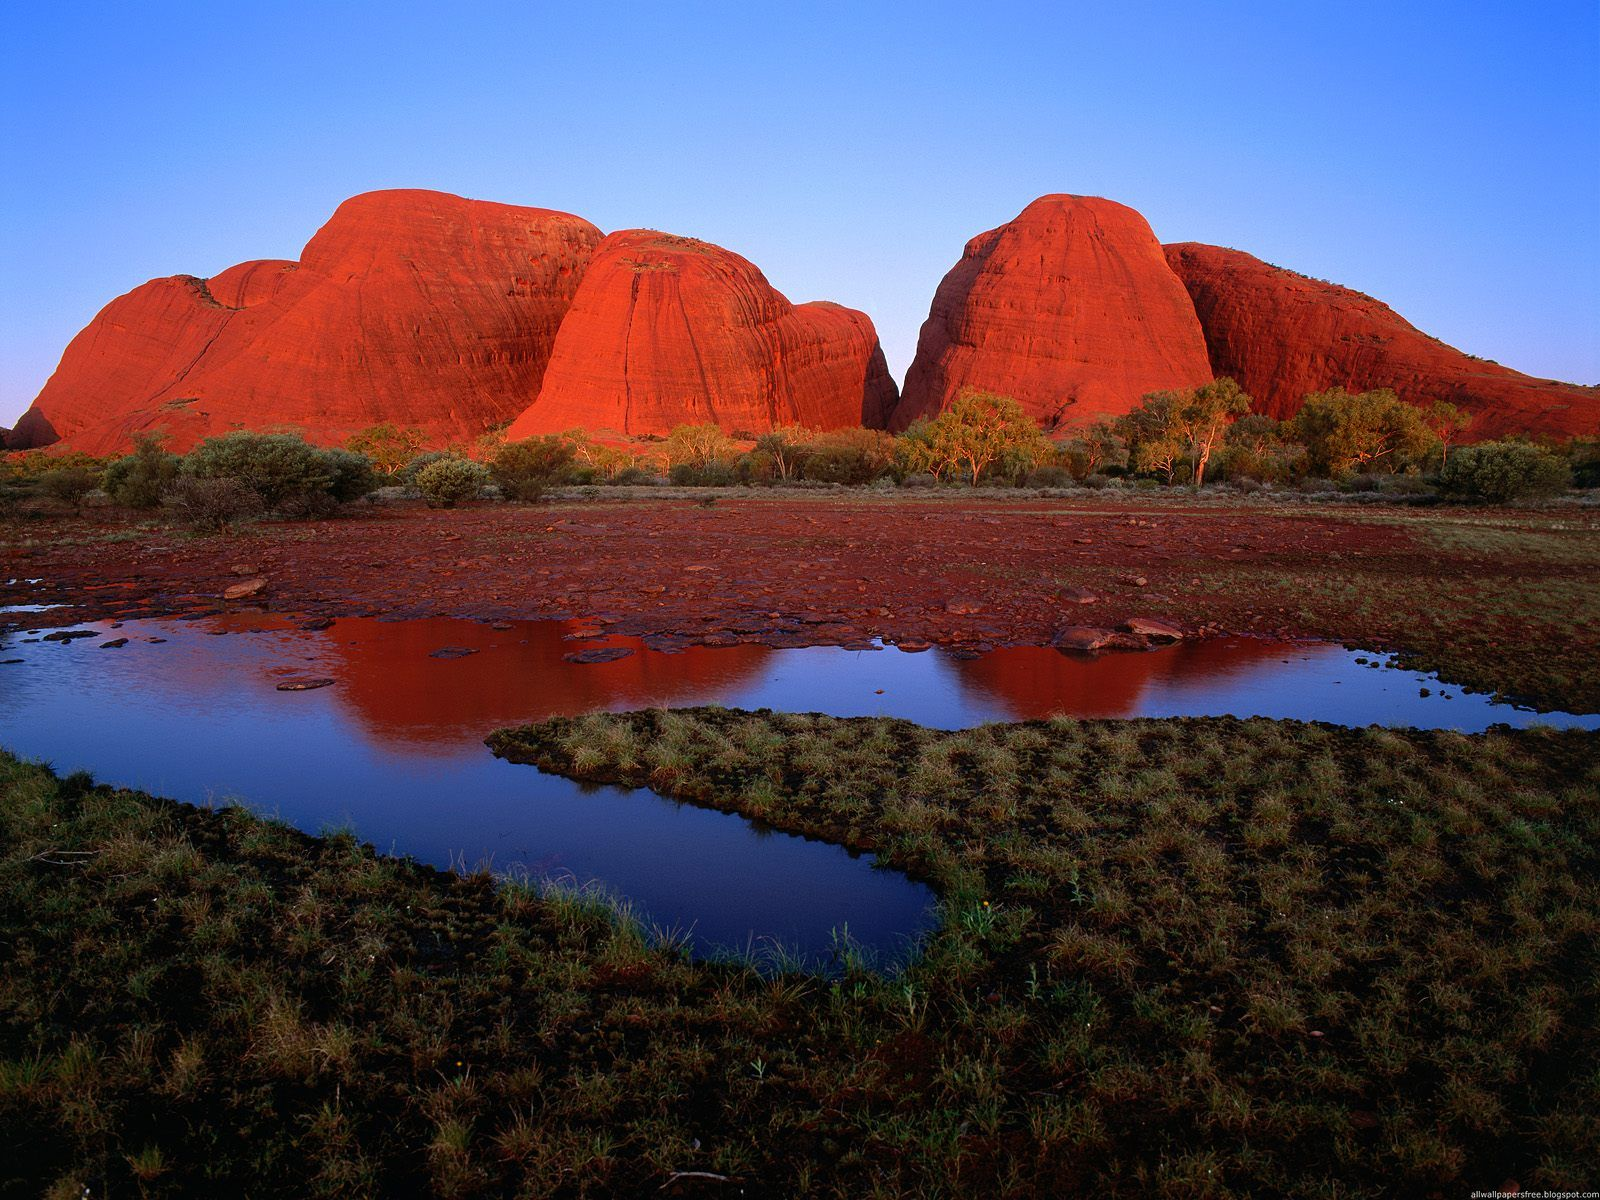 Wallpapers » australie wallpapers